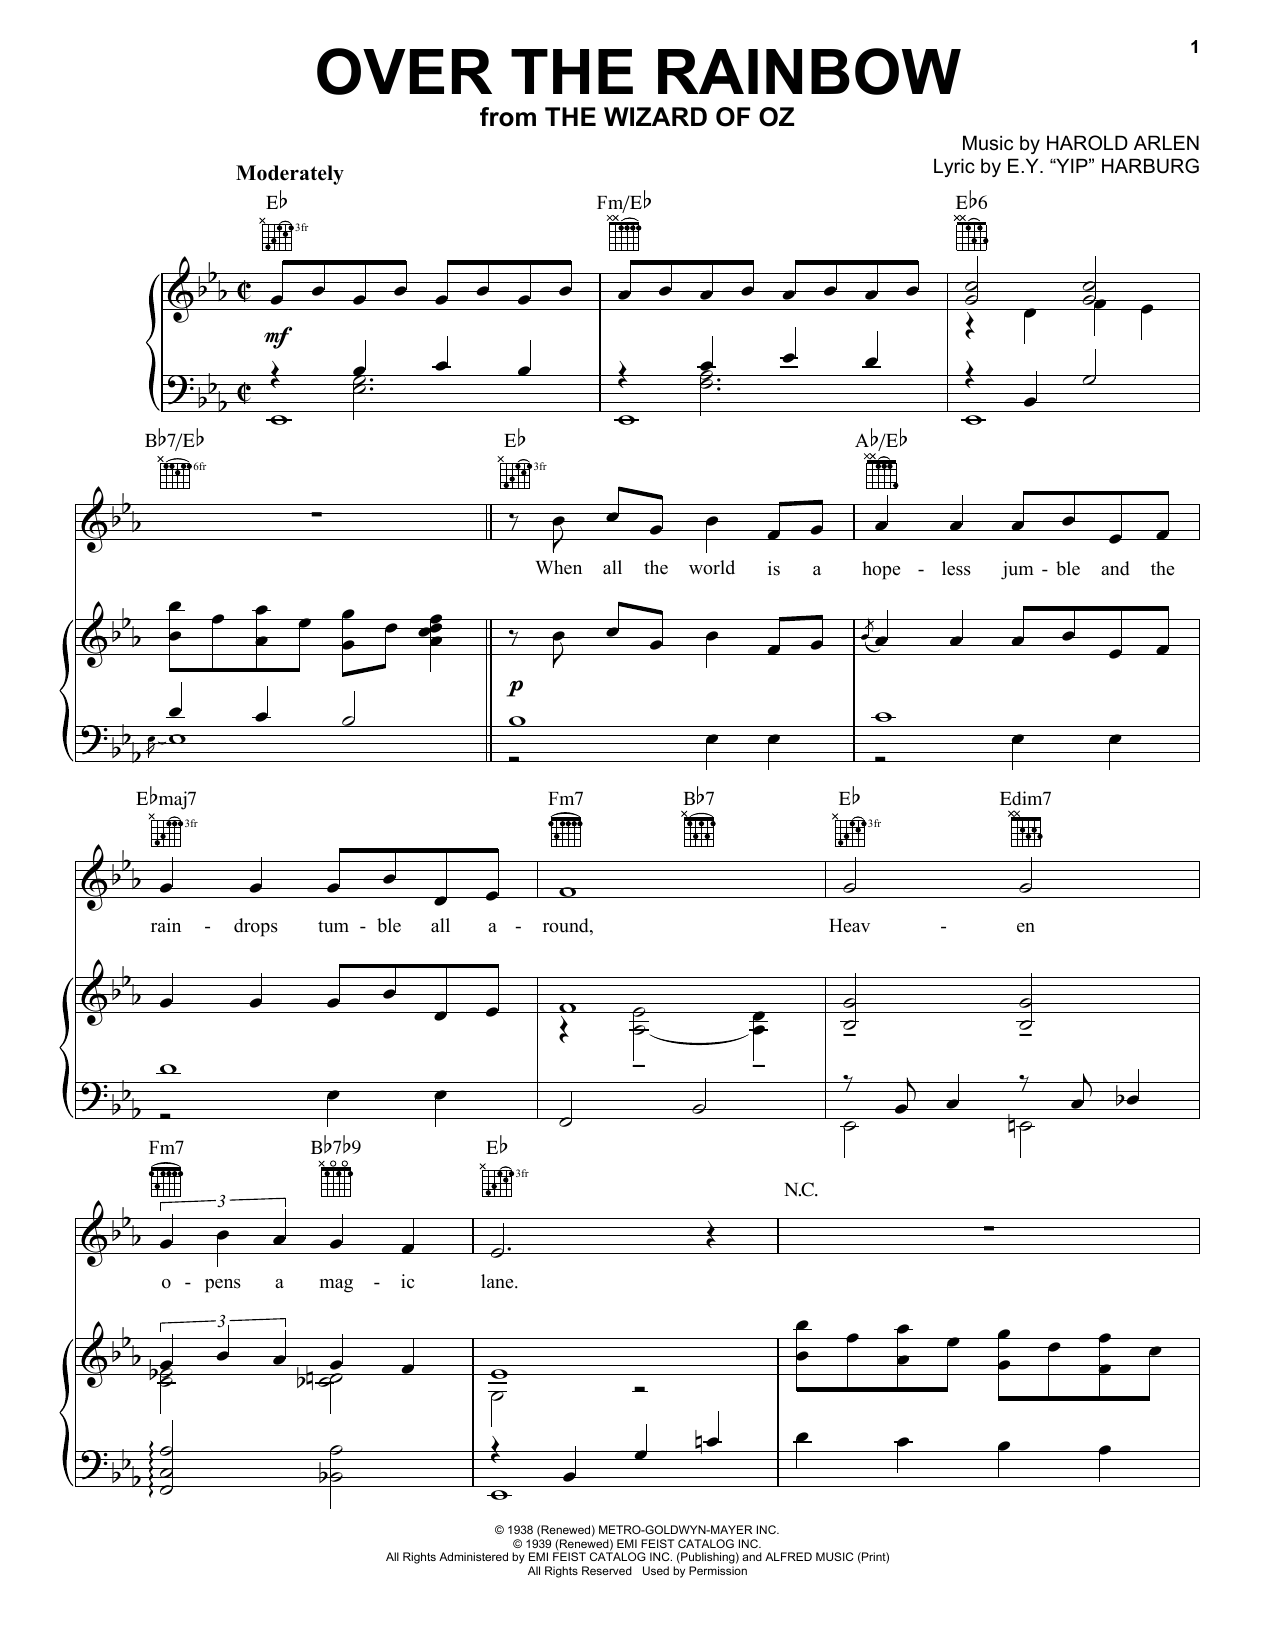 Somewhere over the rainbow sheet music pdf free